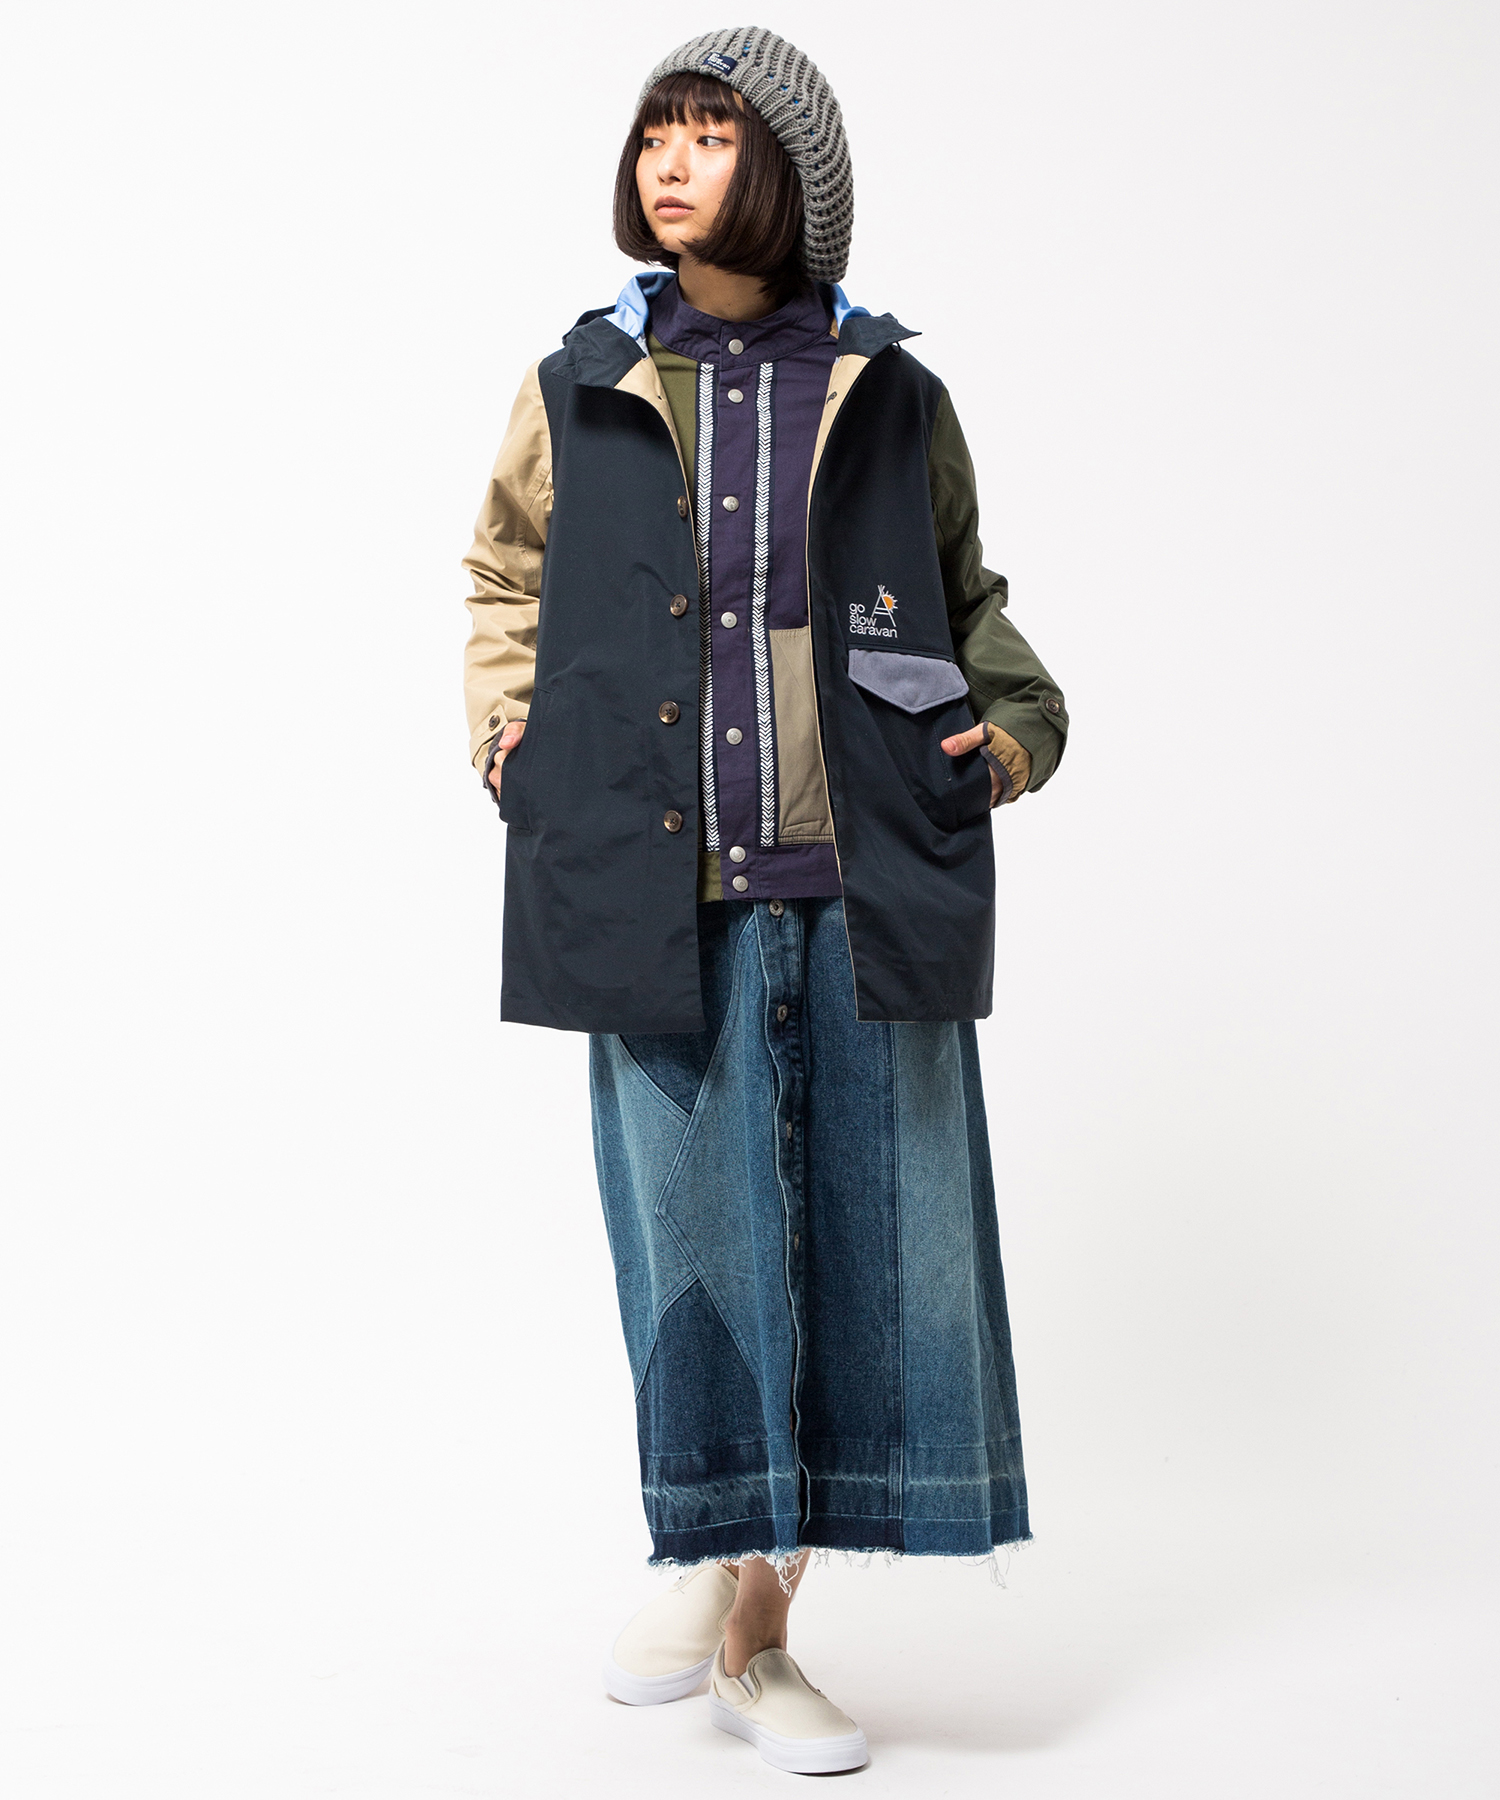 2017 A/W go slow caravan Coordinate Womens